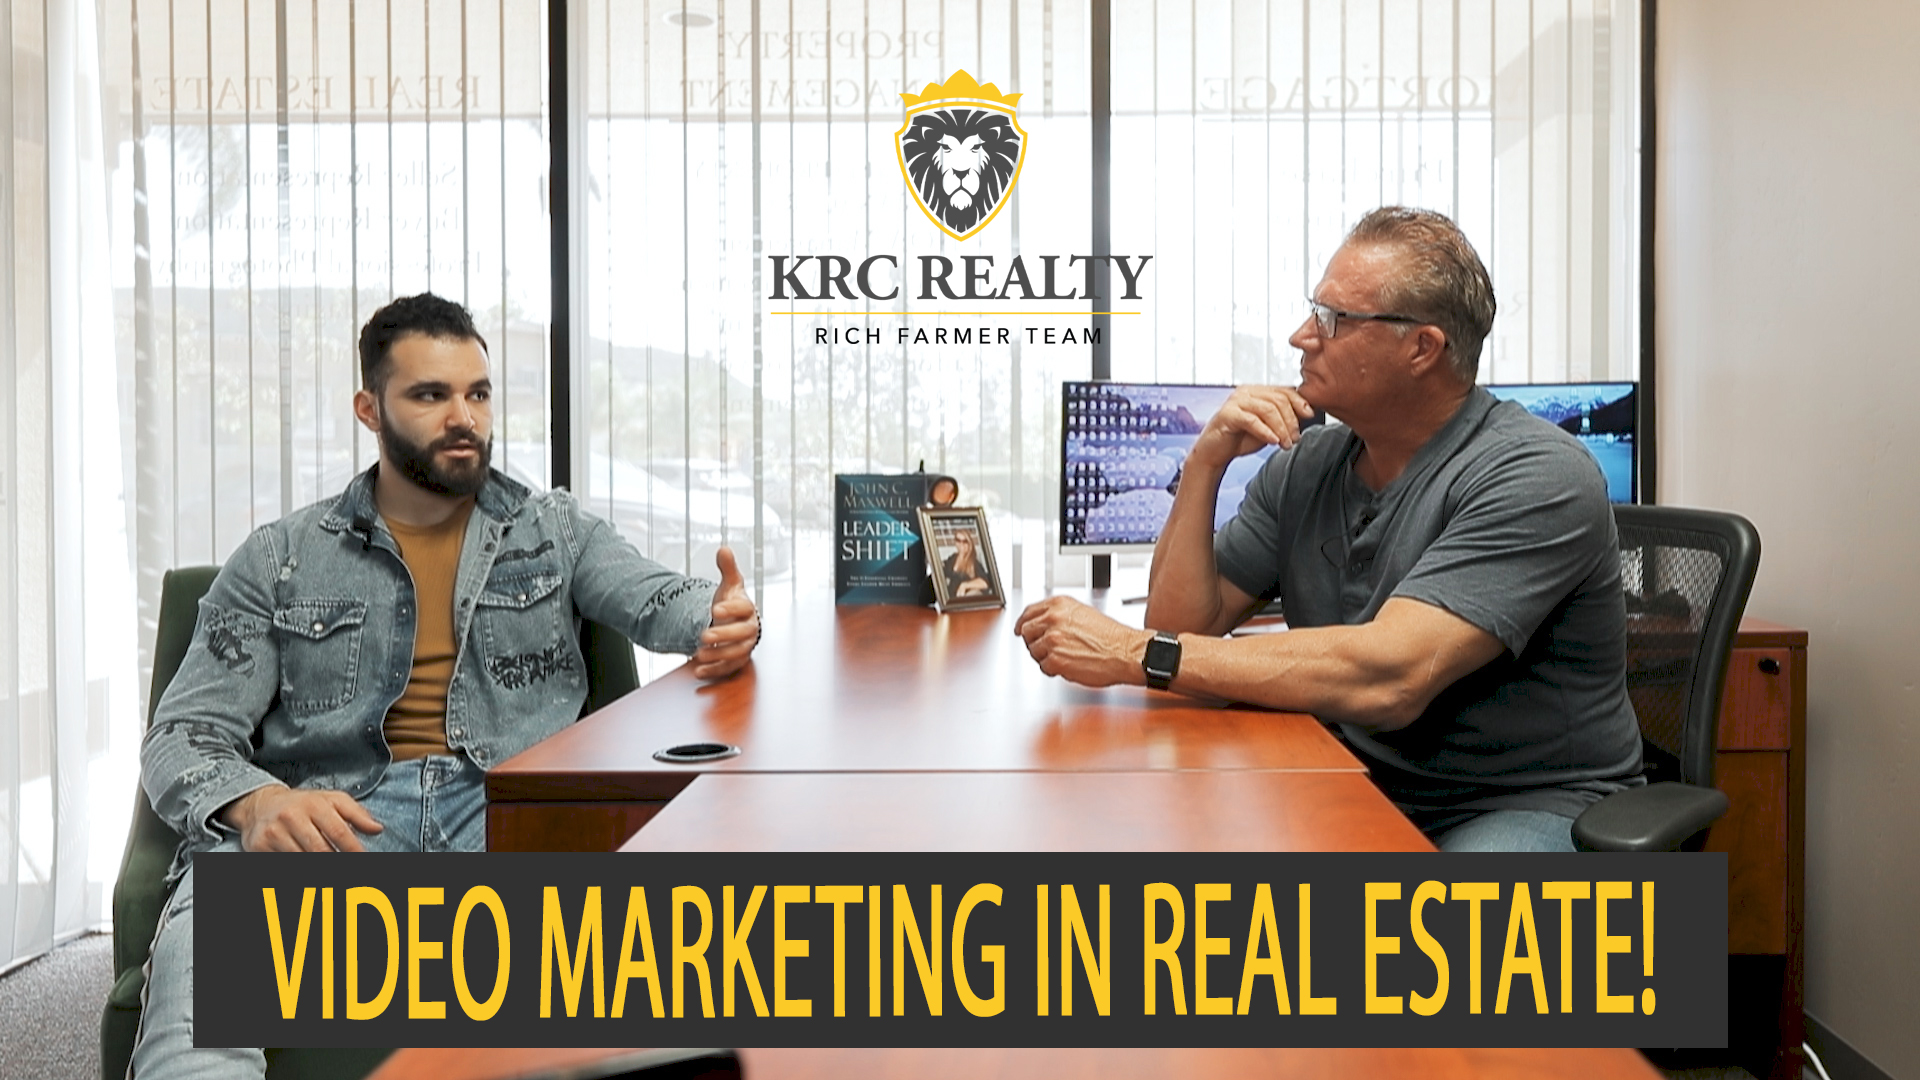 THE IMPORTANCE OF VIDEO MARKETING IN REAL ESTATE!